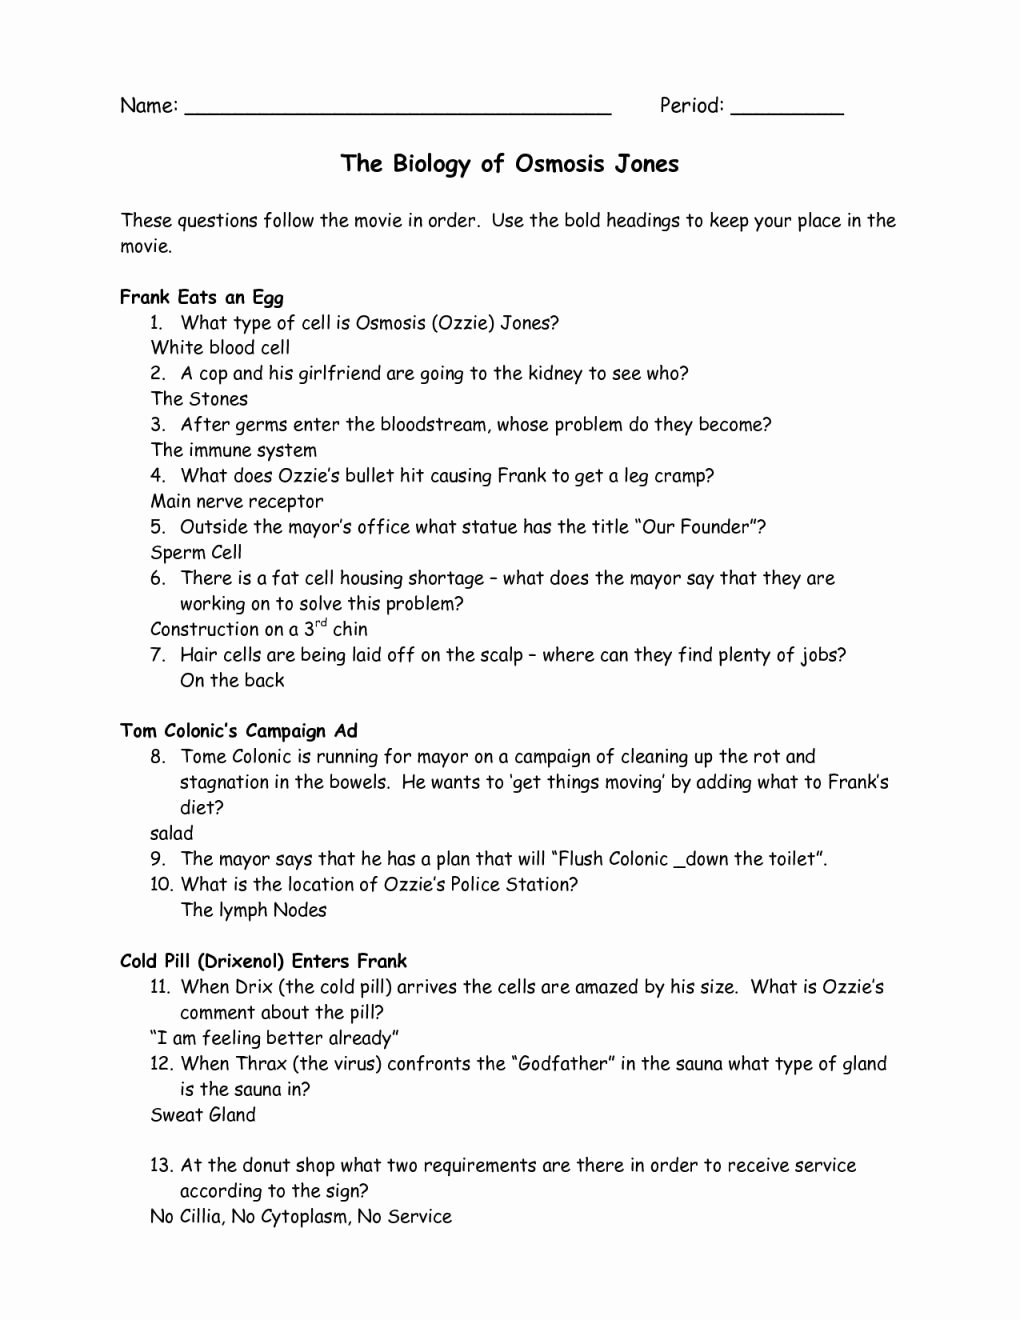 Osmosis and tonicity Worksheet Luxury Osmosis and tonicity Worksheet Answers